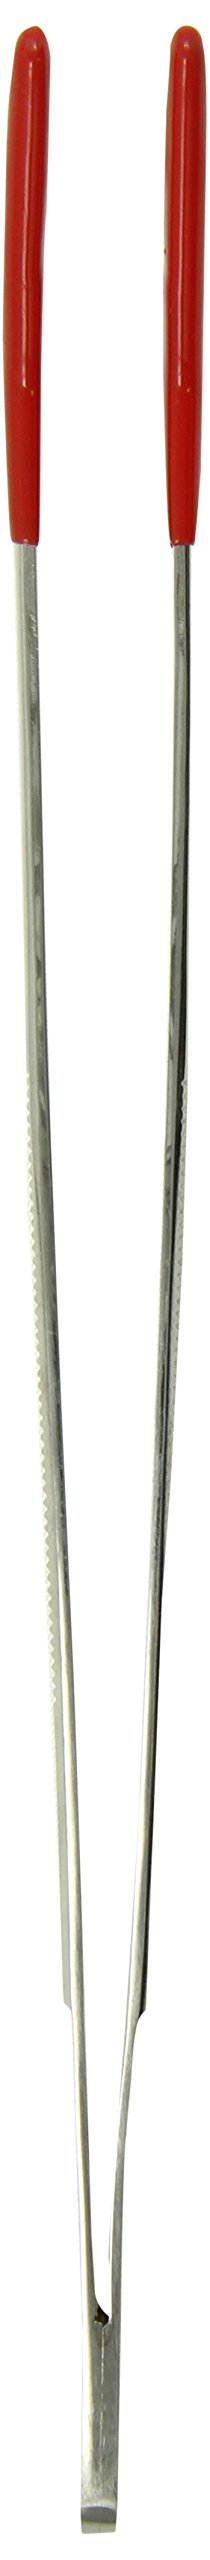 TAMSCO Tweezers 12-Inch Stainless Steel Angled Tip Serrated Tip Blunt Point